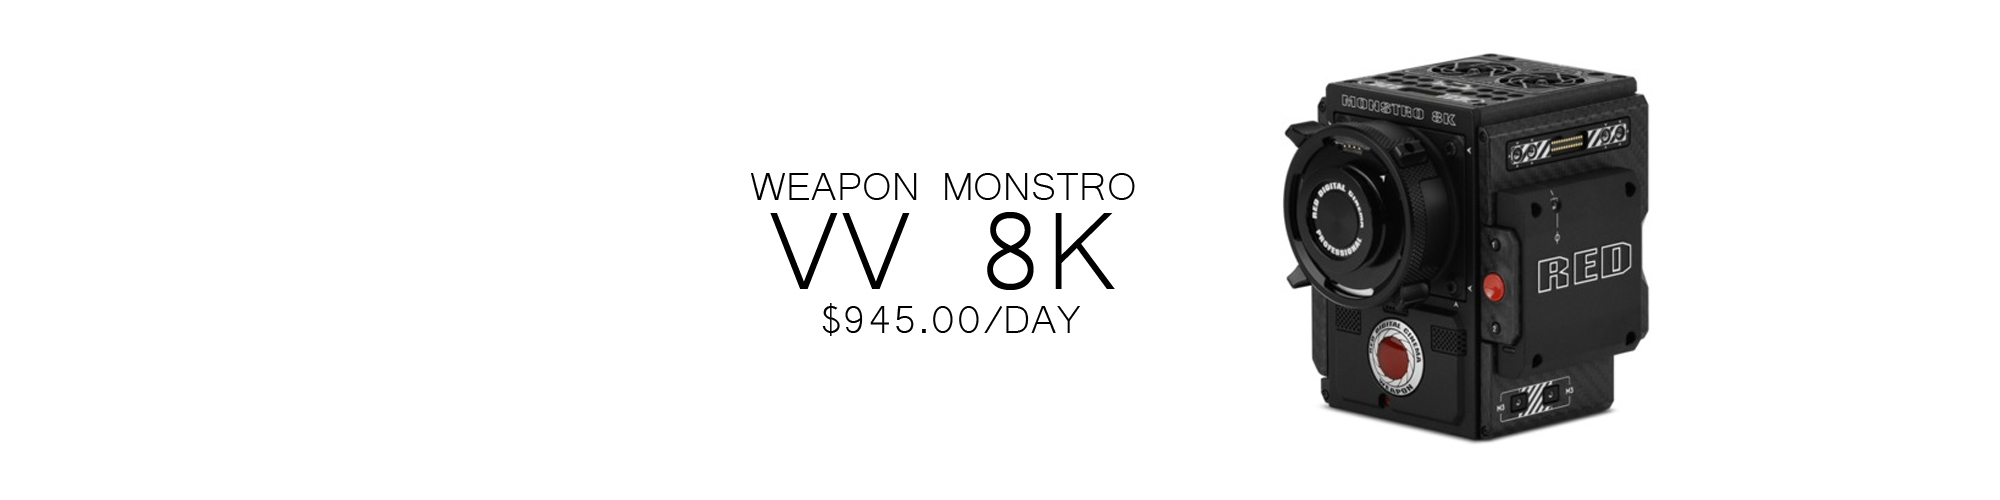 Weapon Monstro RENTALS TORONTO